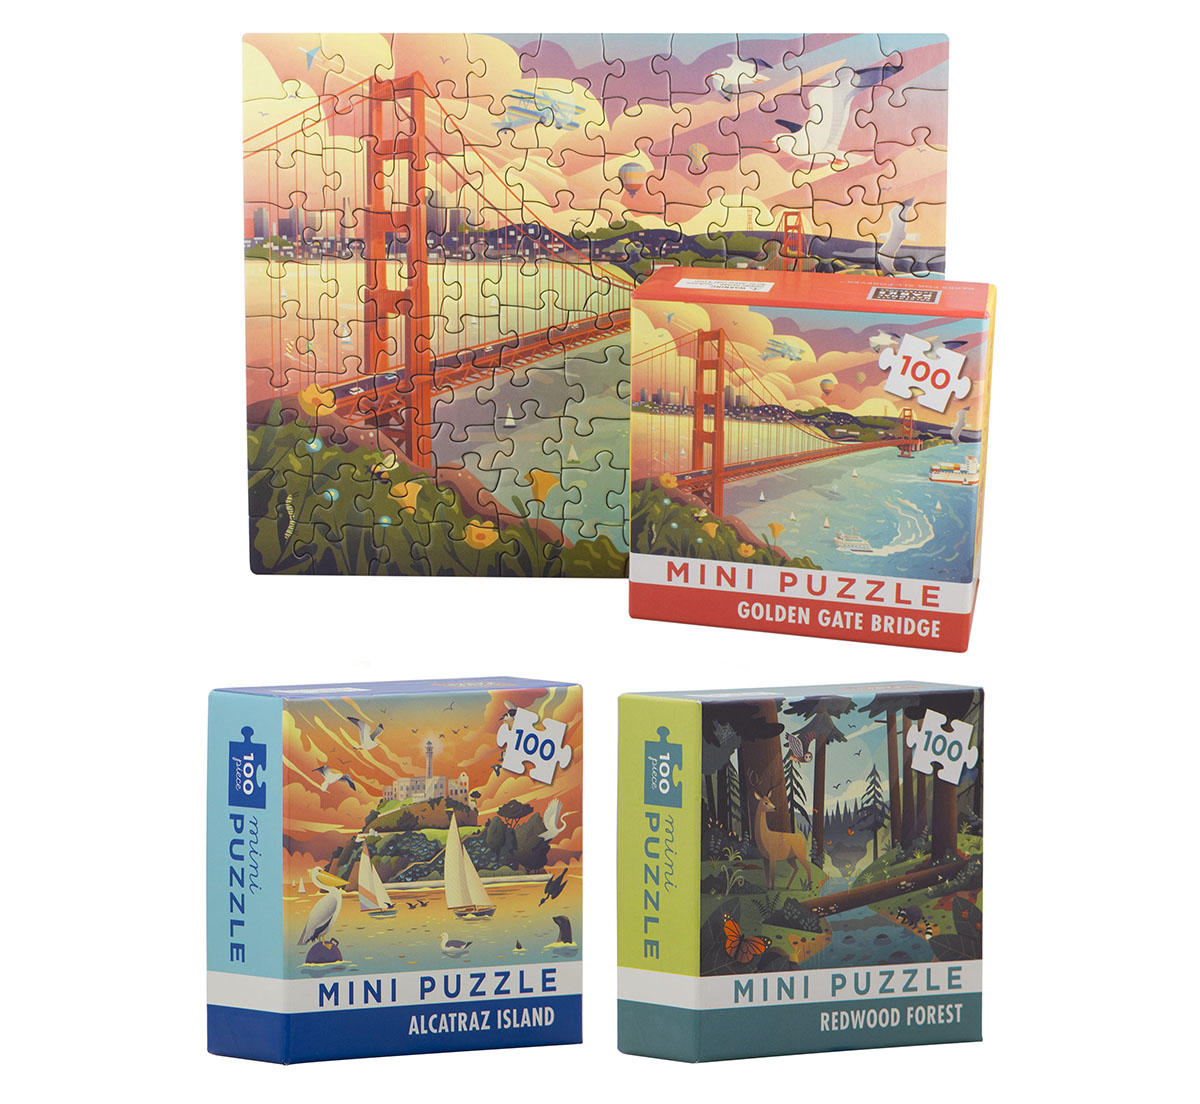 Mini puzzles featuring San Francisco landmarks, Alcatraz, and a redwood forest.